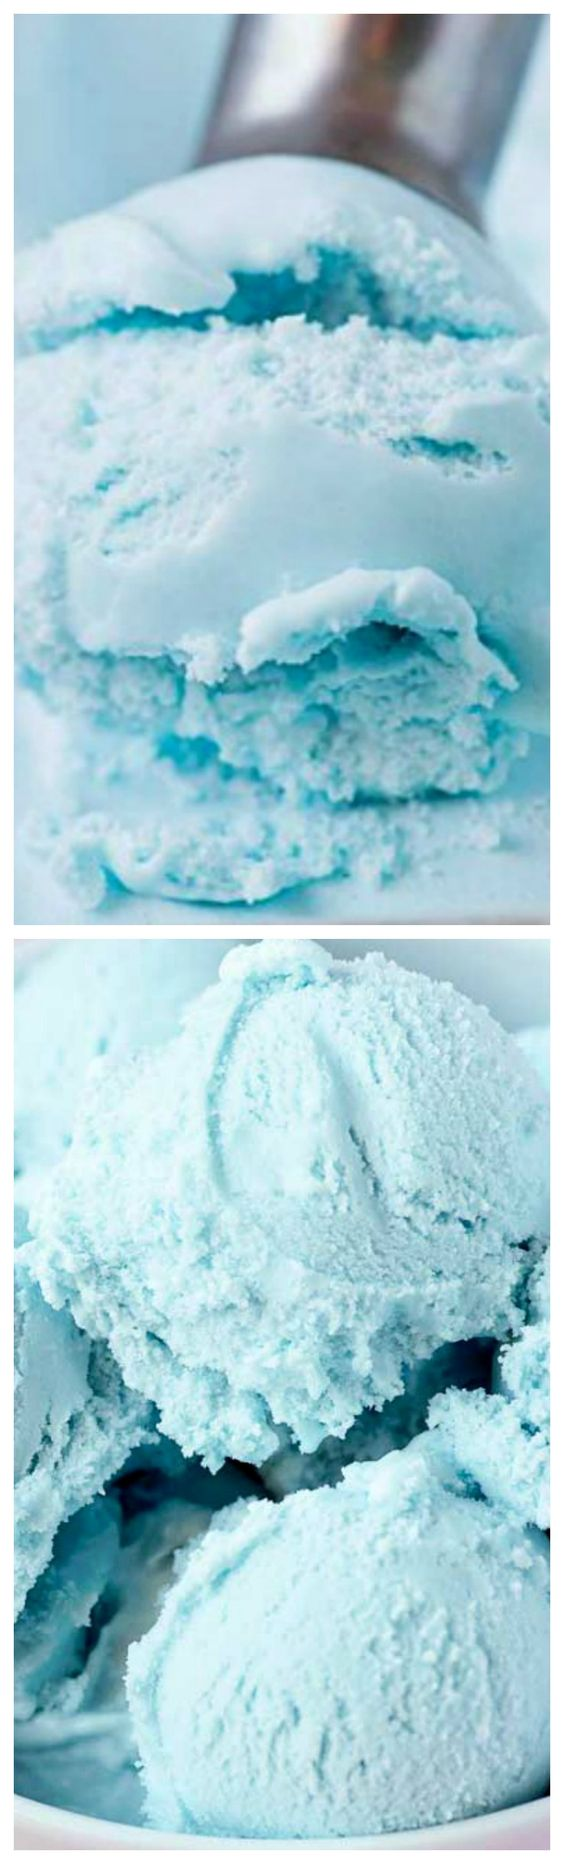 Cotton Candy Ice Cream ~ Celebrate the season with the treat that embodies summer fun (cotton candy) in the form of chilly ice cream